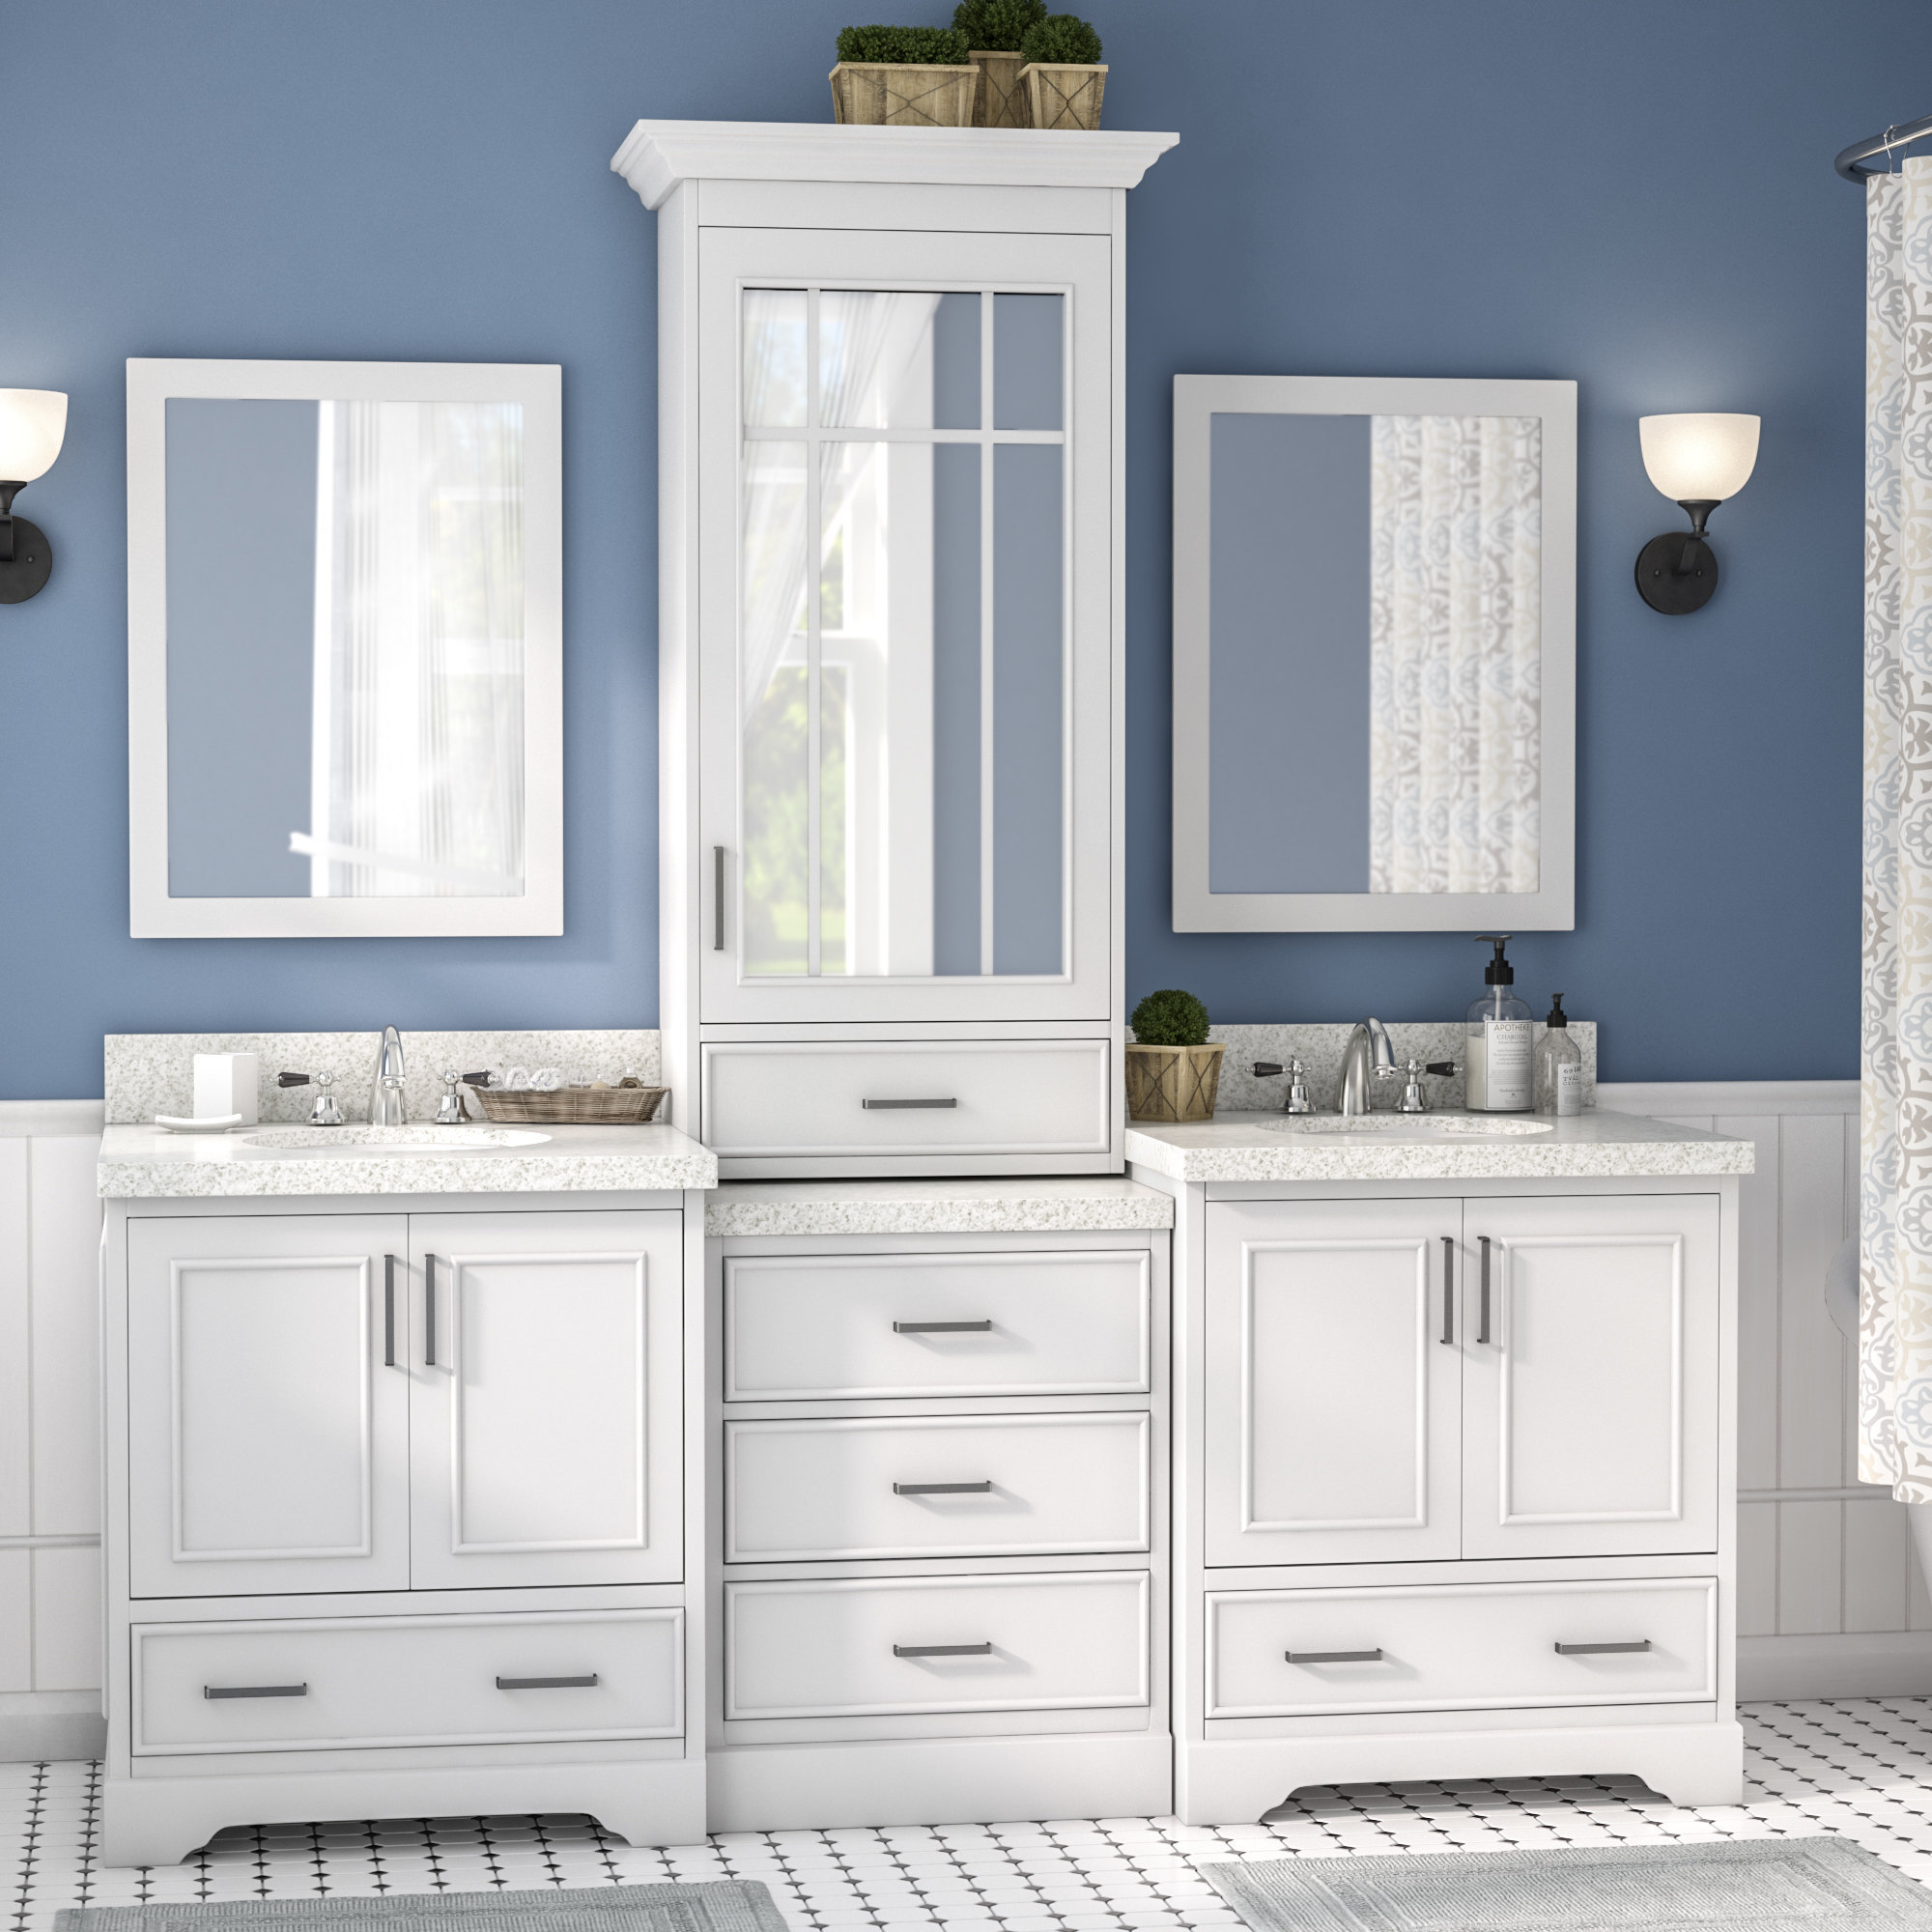 Geraldina 85 Double Sink Bathroom Vanity With Mirror throughout dimensions 2000 X 2000